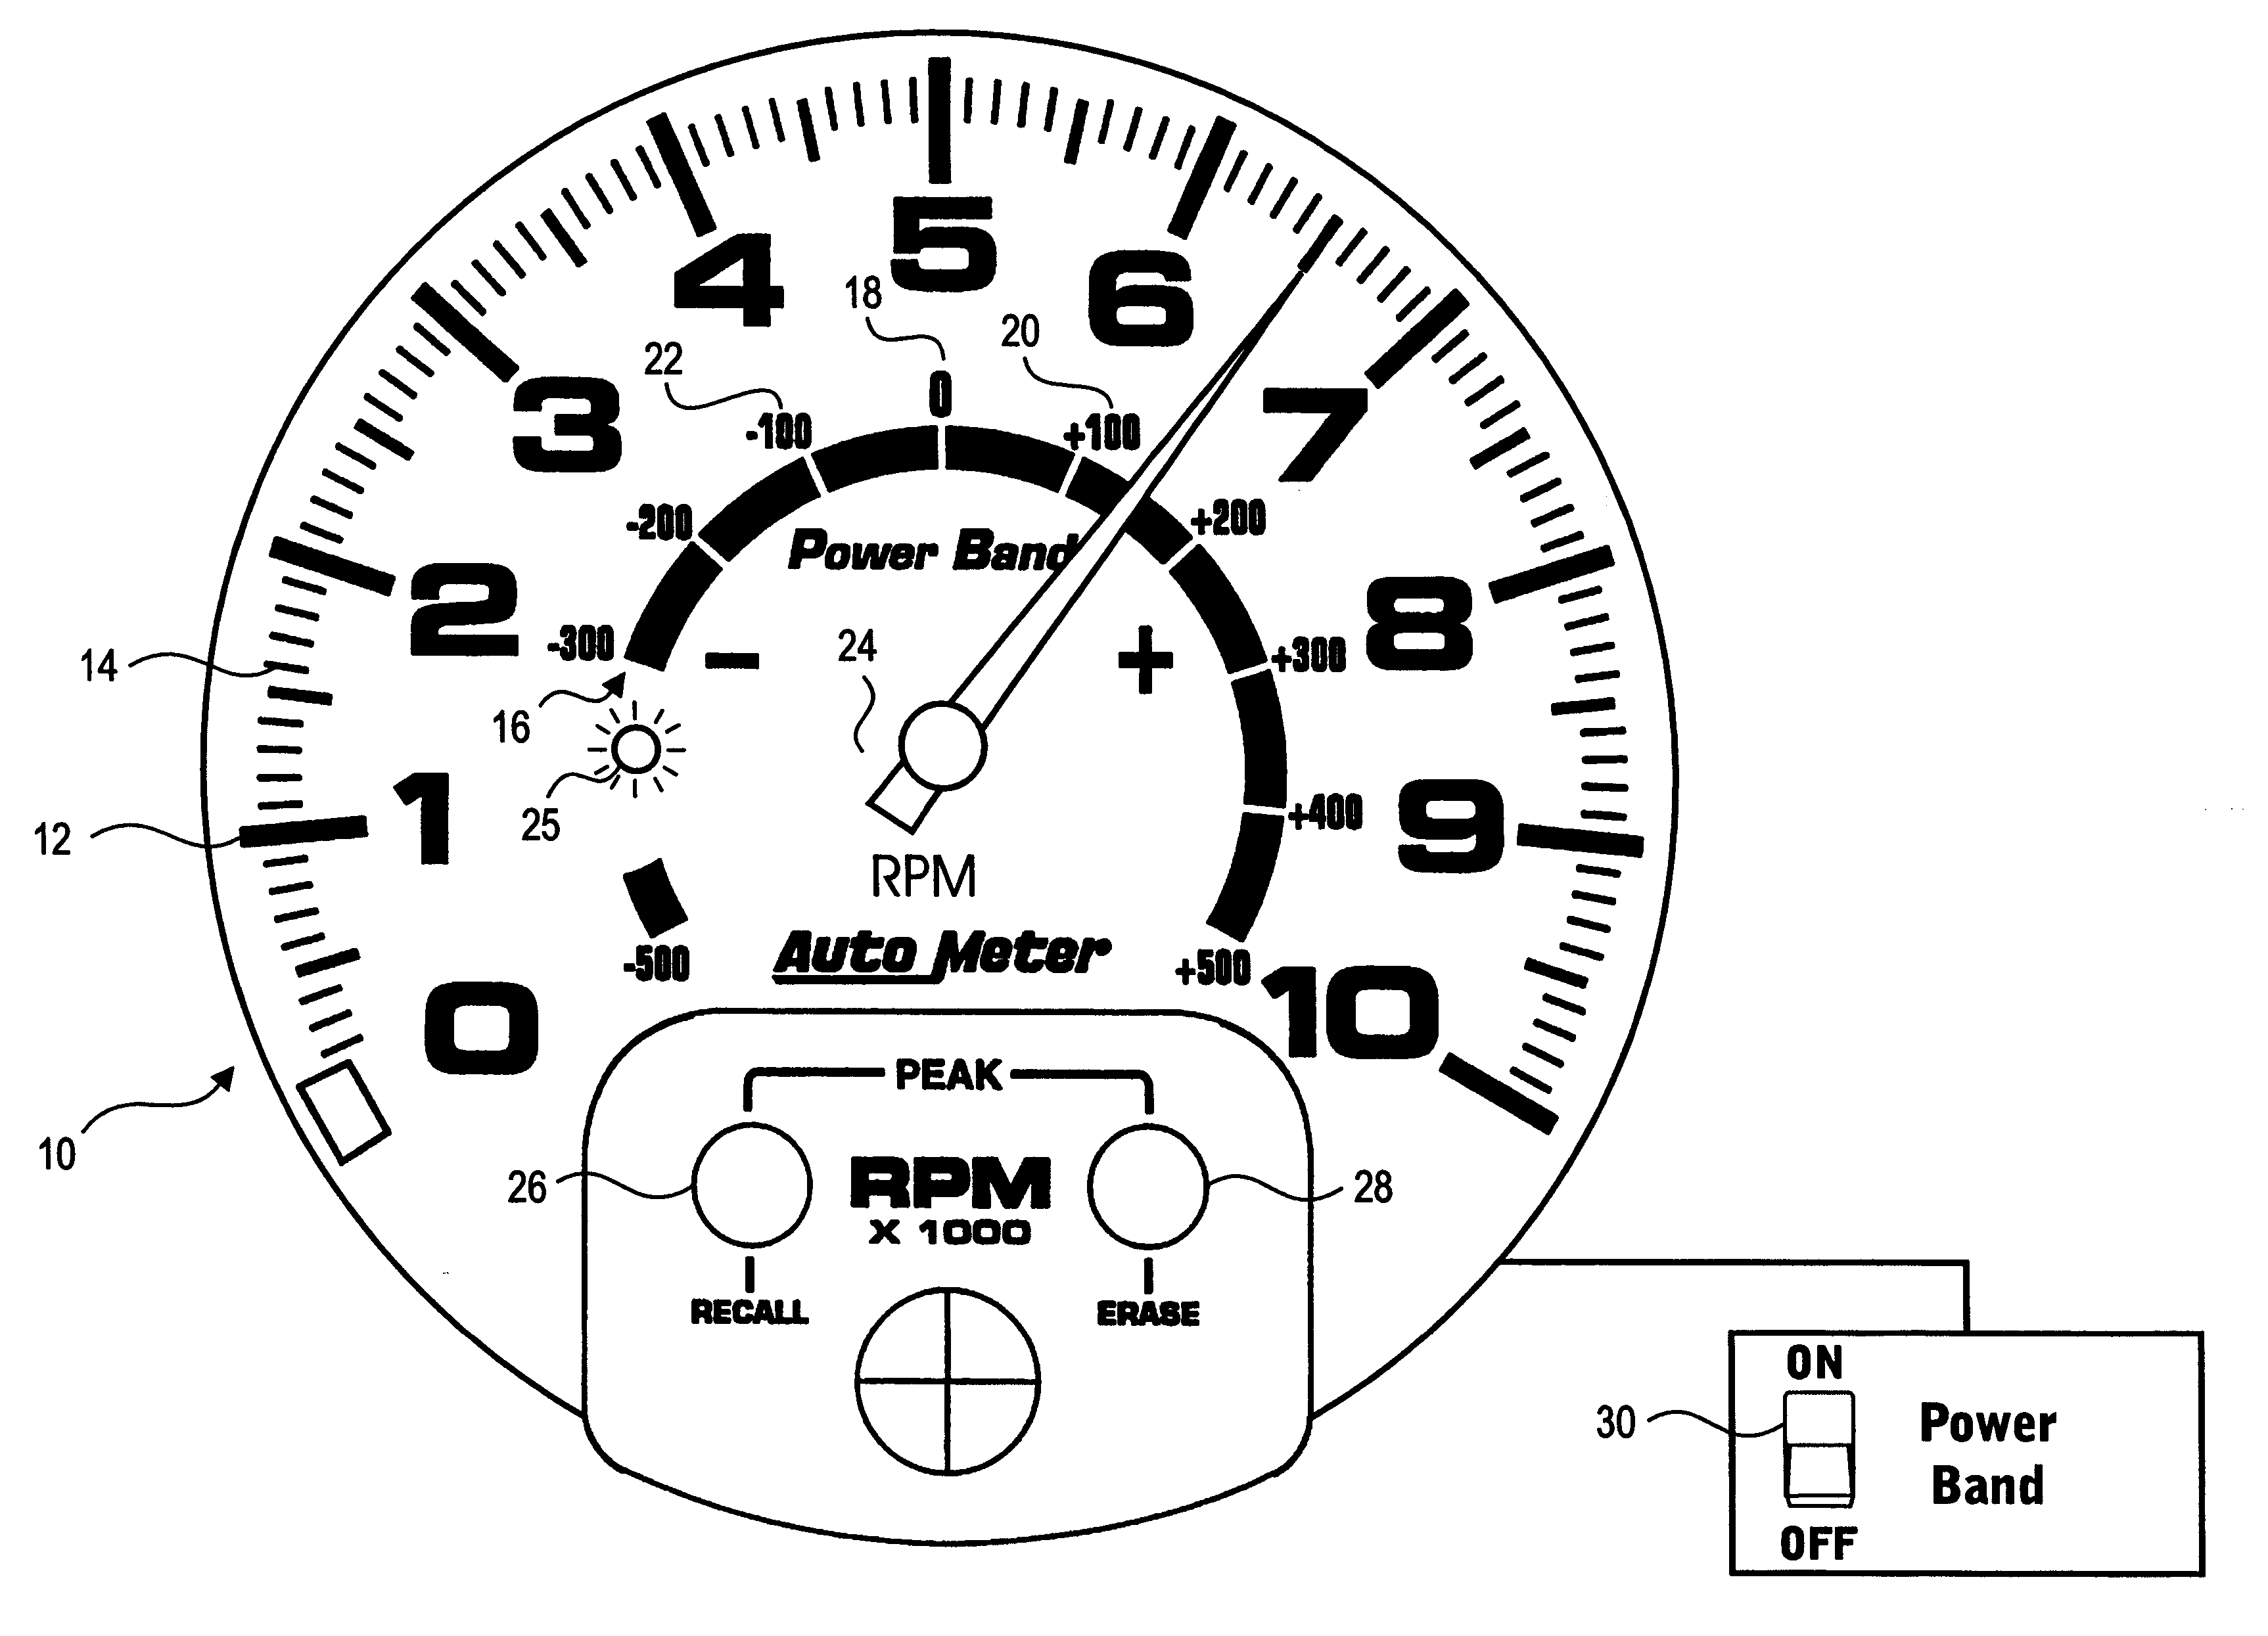 Rpm Meter Wiring Diagram Wiring Diagrams And Schematics – Rpm Meter Wiring Diagram A